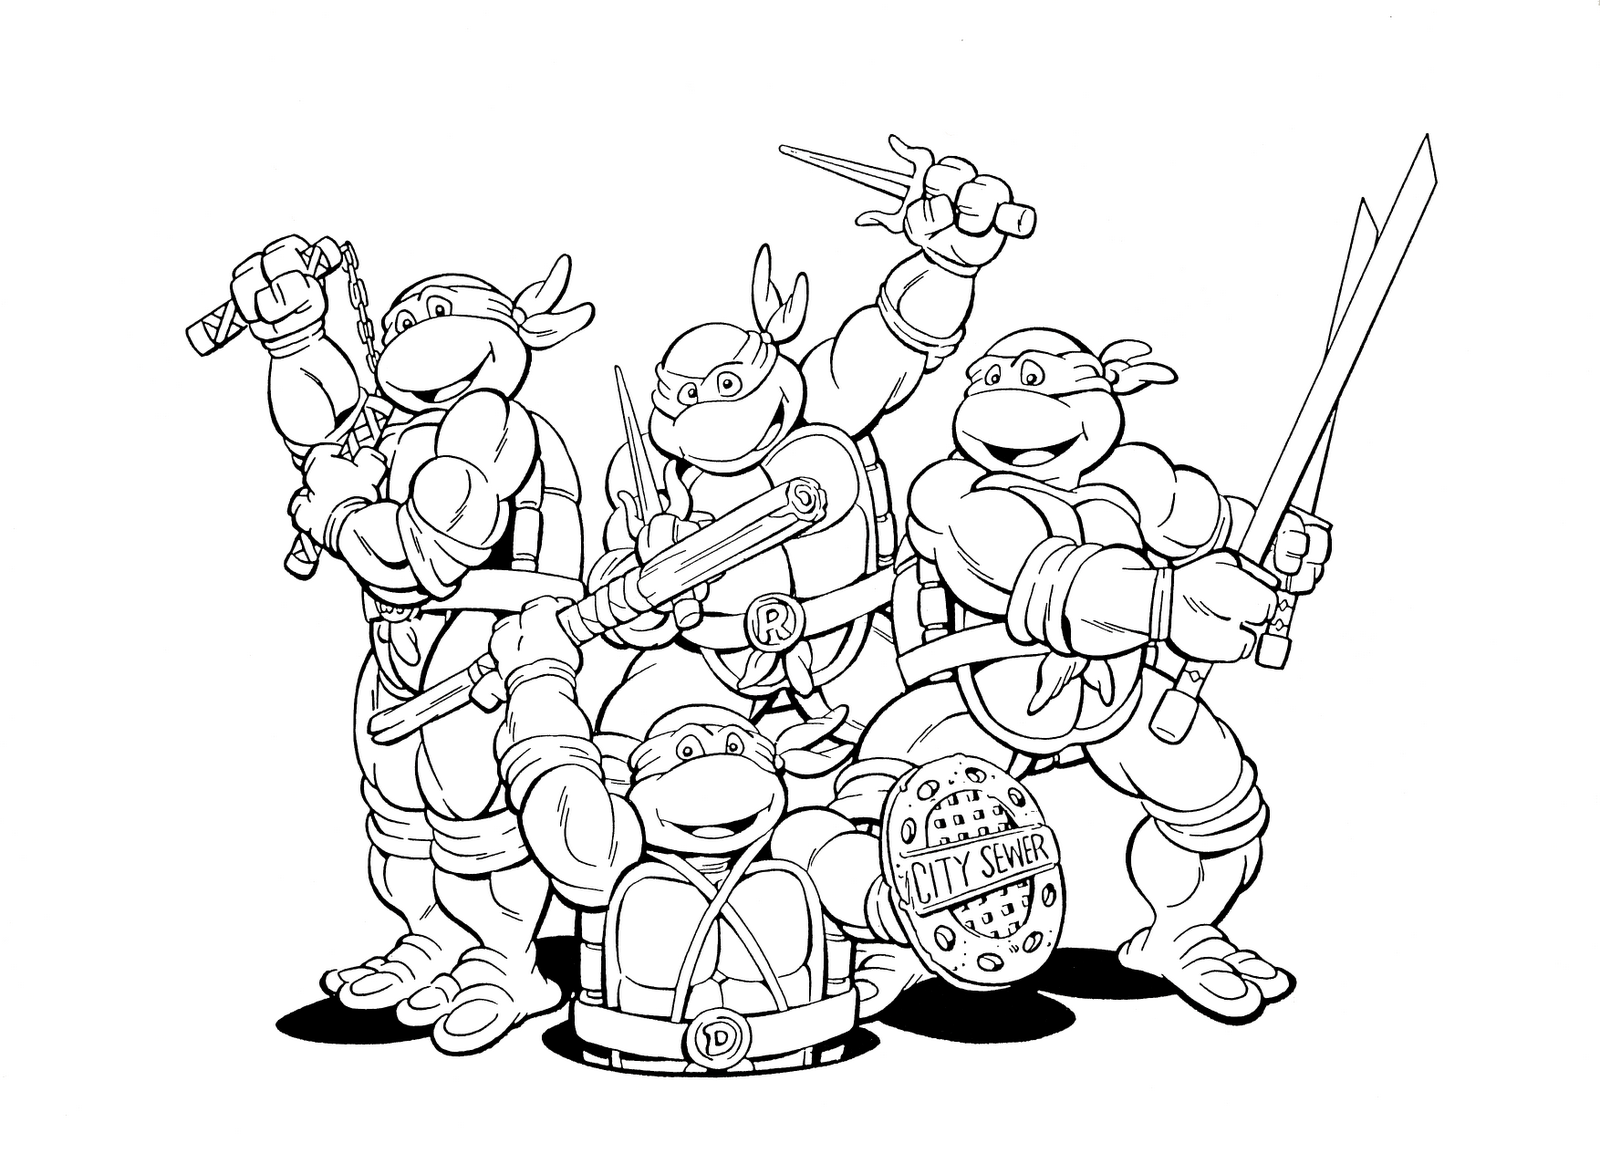 tmnt coloring ninja turtle coloring pages free printable pictures coloring tmnt